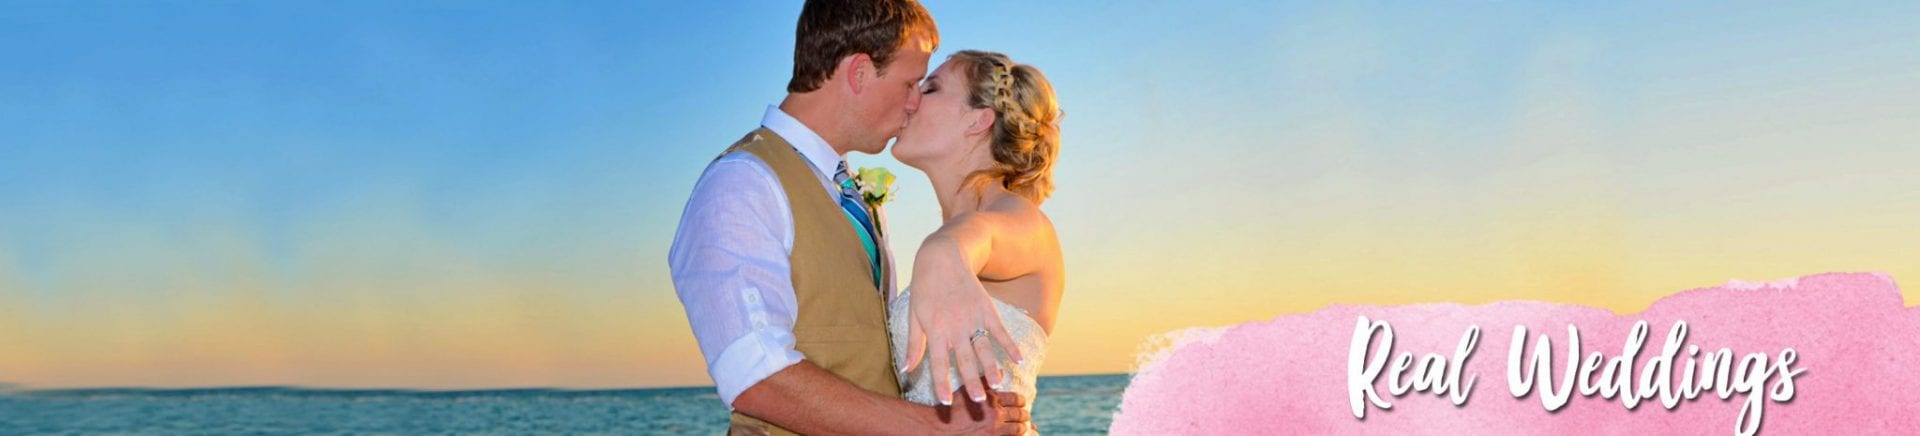 Headshot of wedding couple kissing at beach